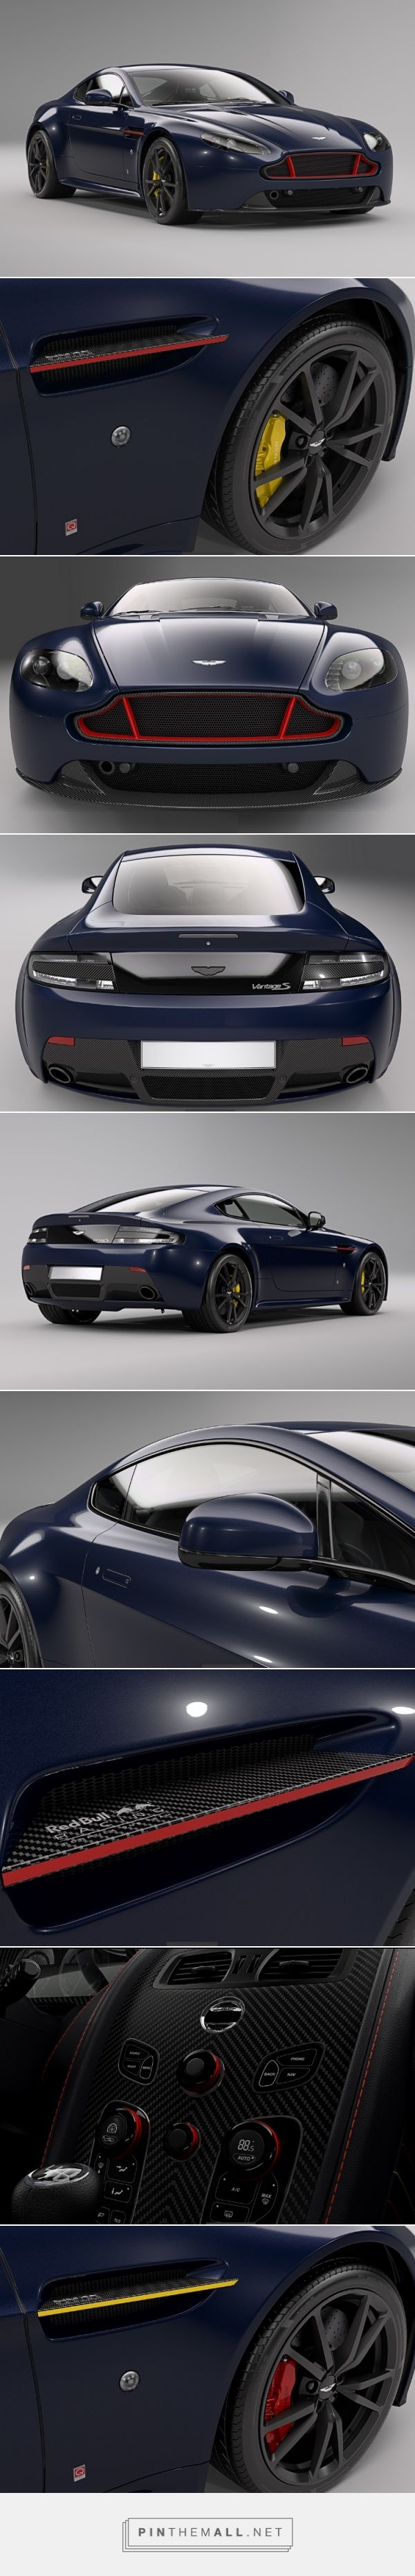 Aston Martin Unveils Vantage Red Bull Racing Range | Man of Many - created via https://pinthemall.net